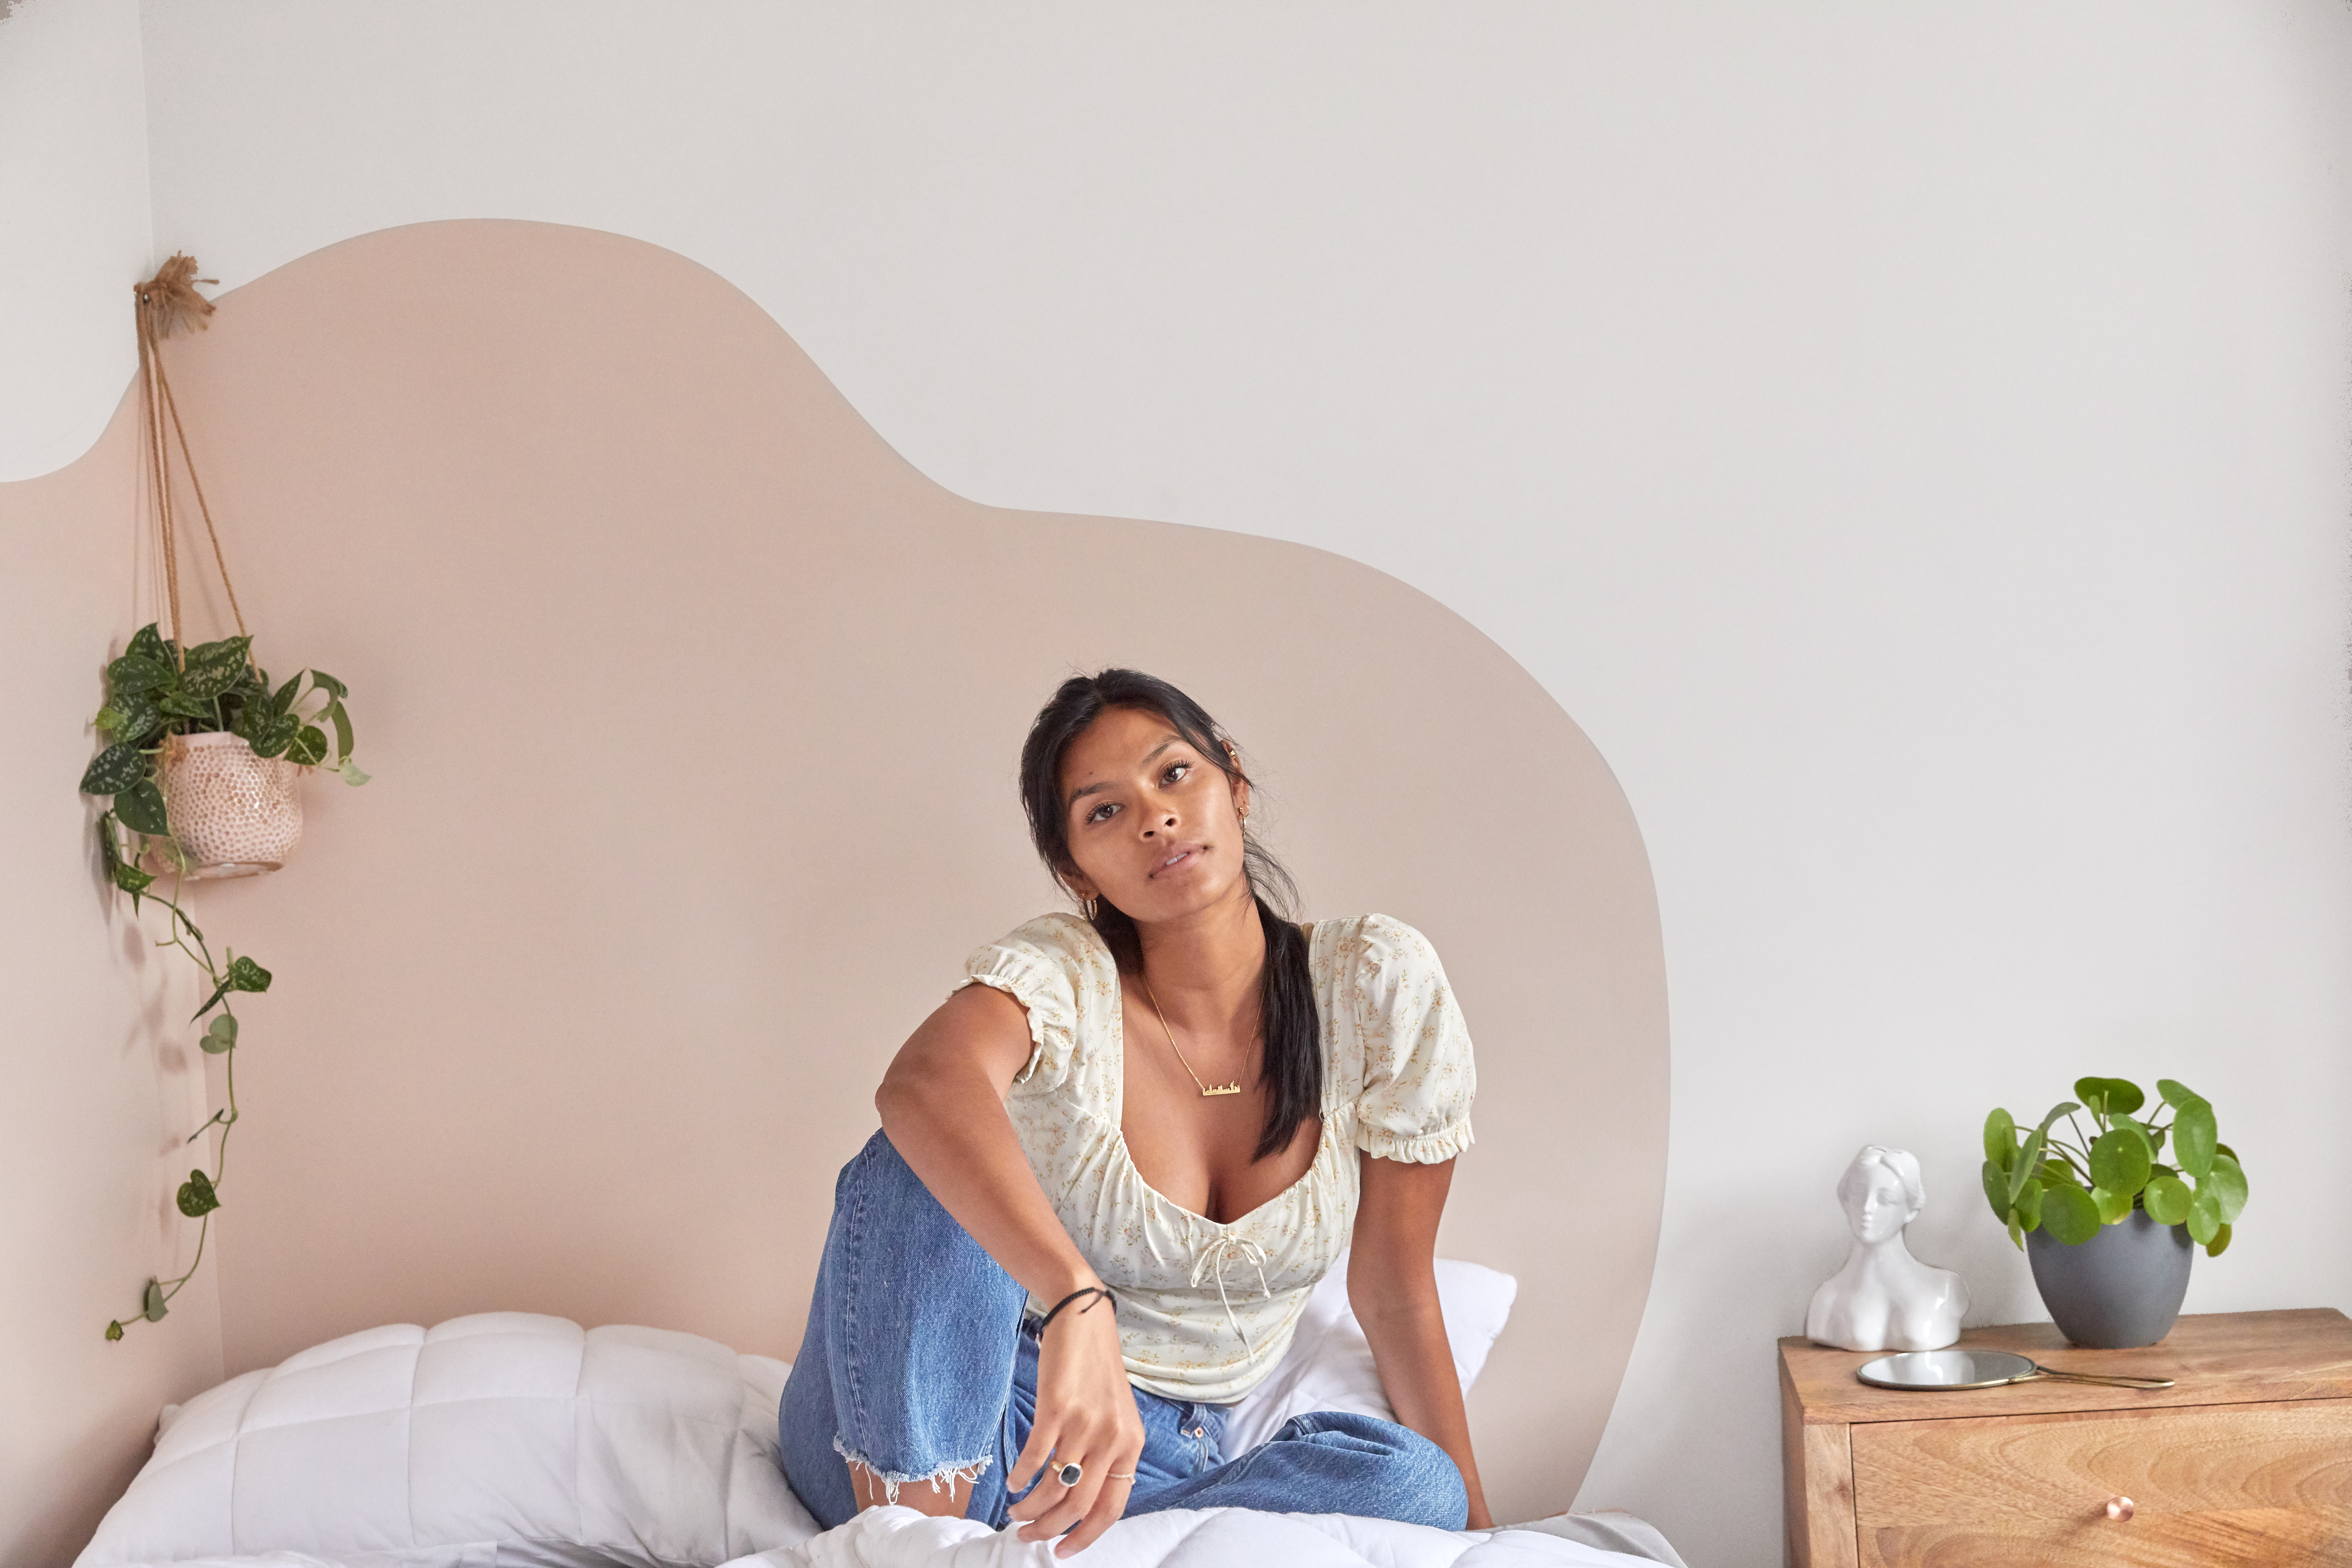 Girl sitting on bed in front of white and pink wall